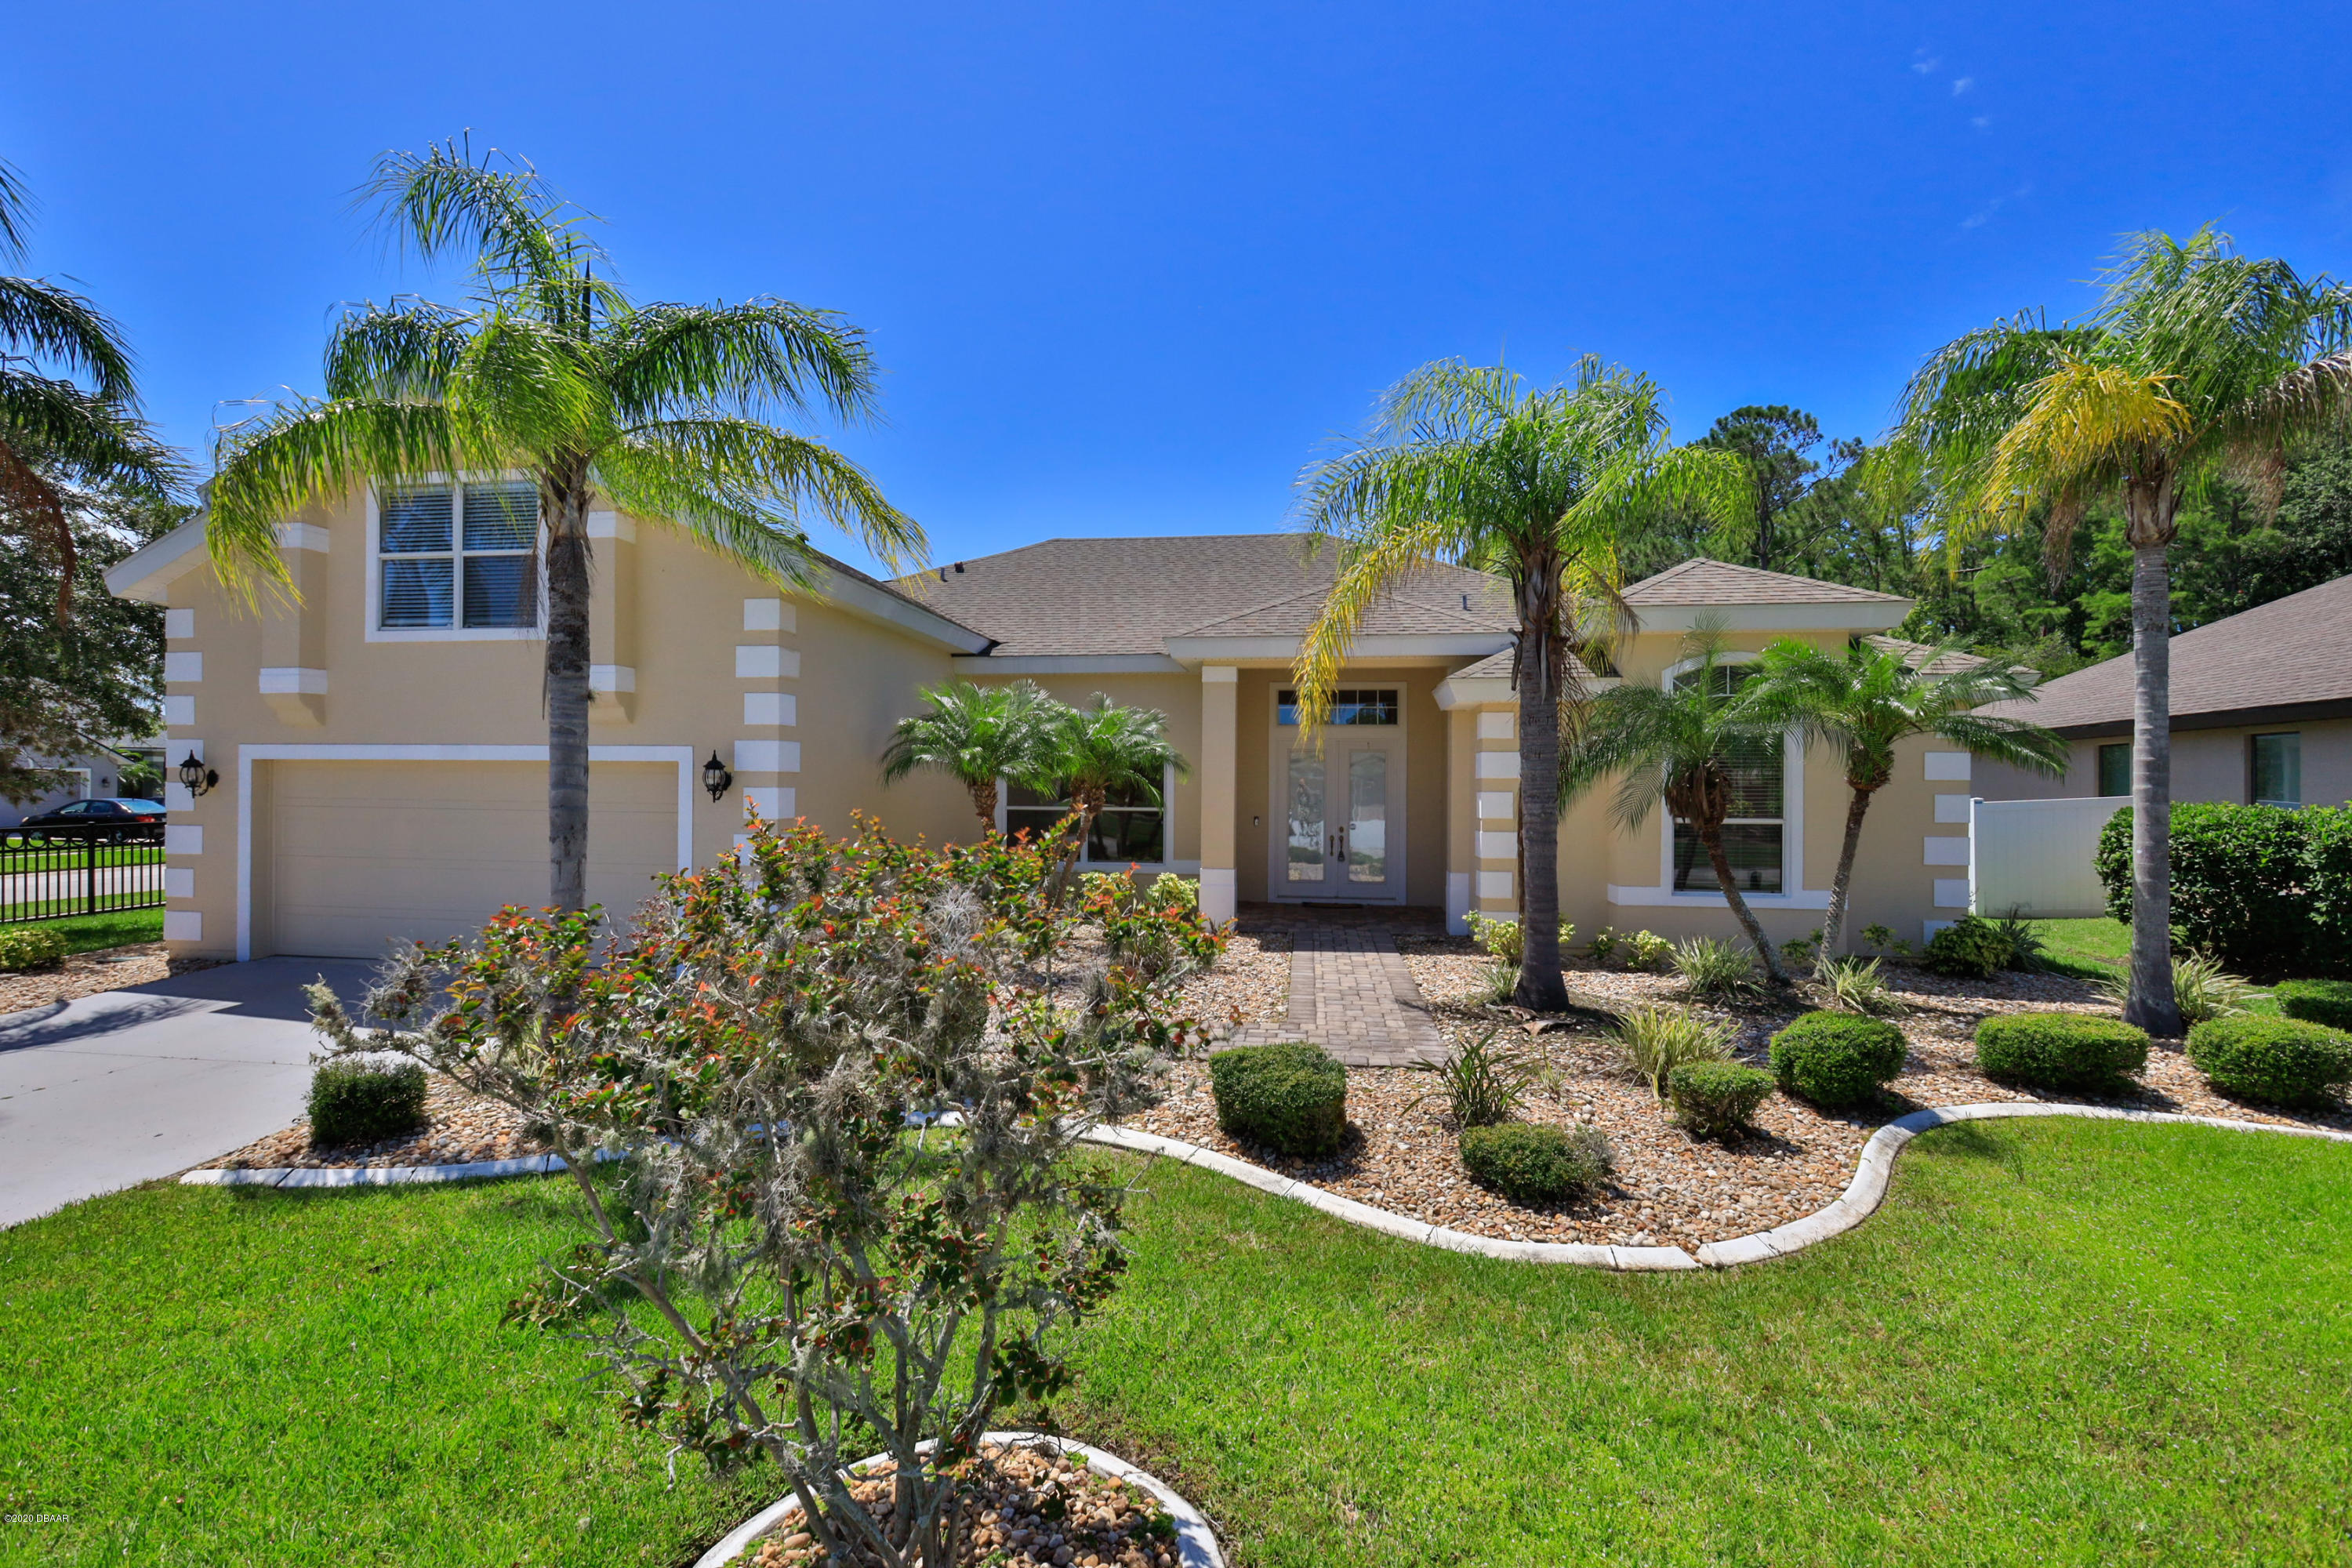 Photo of 6728 Merryvale Lane, Port Orange, FL 32128